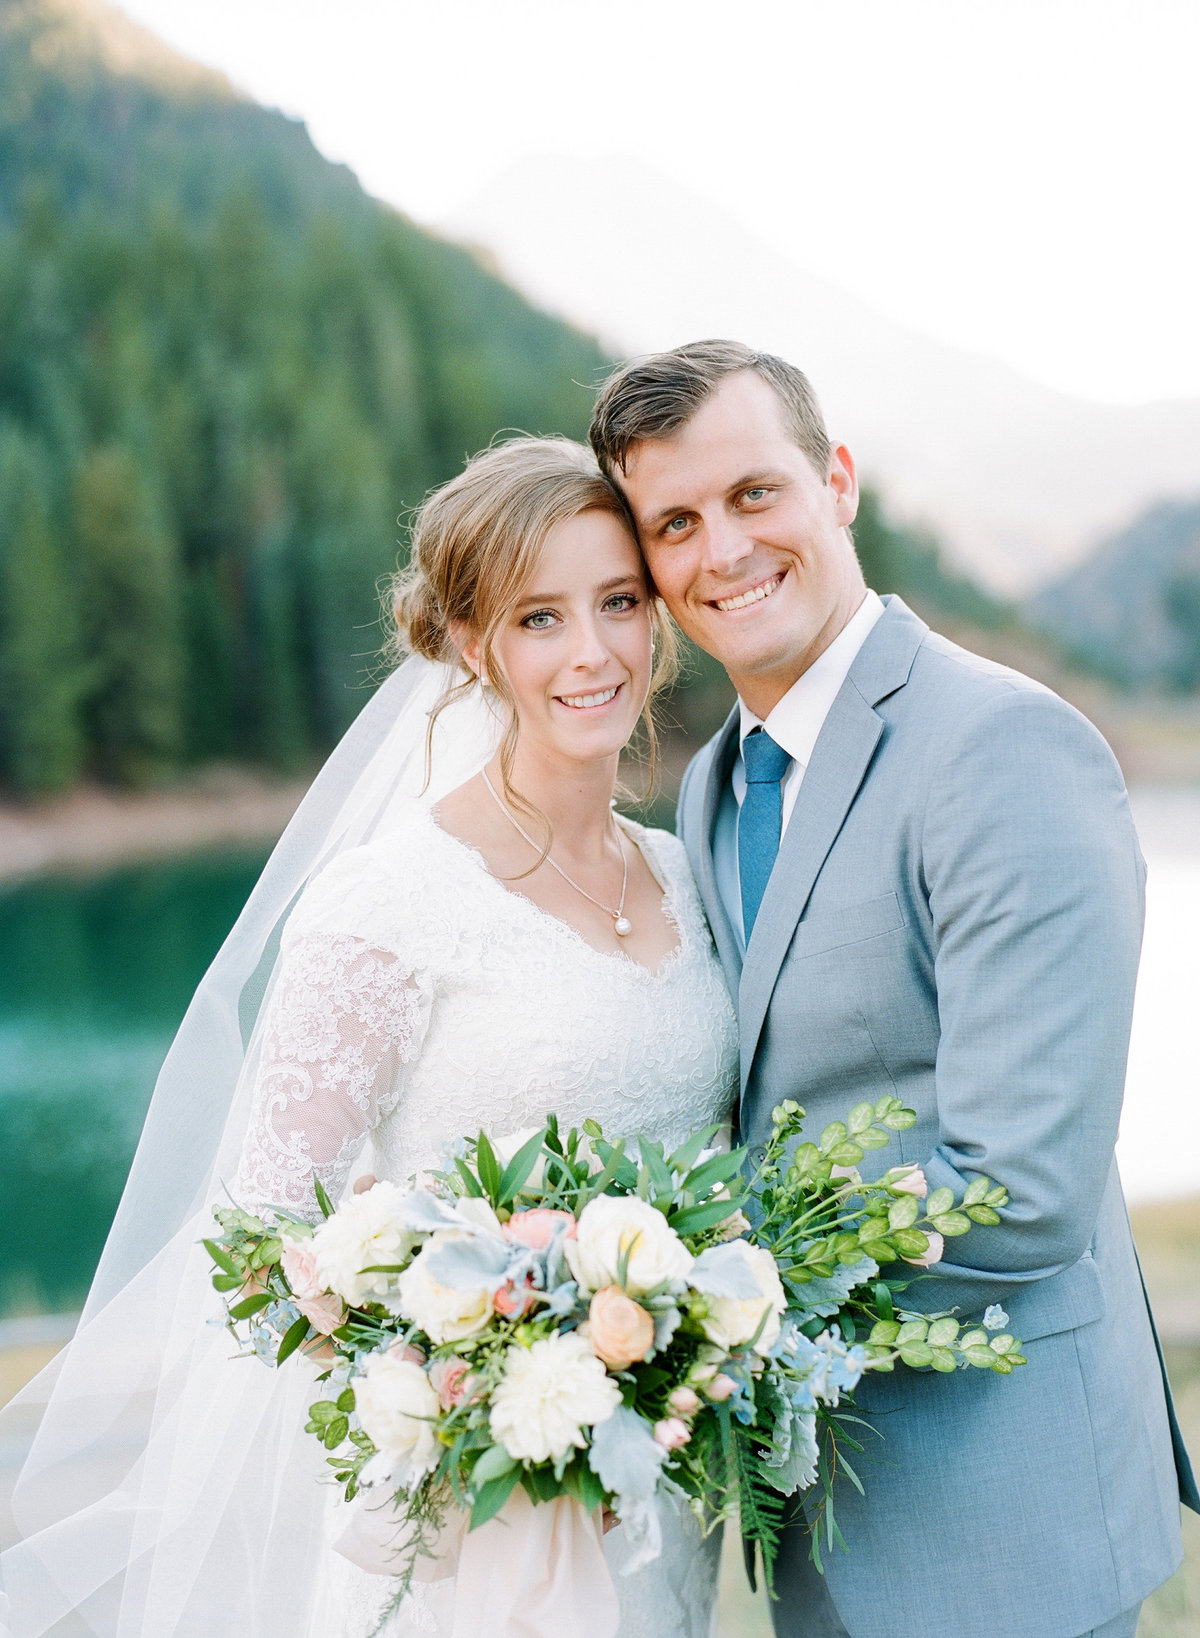 best utah wedding photographer25